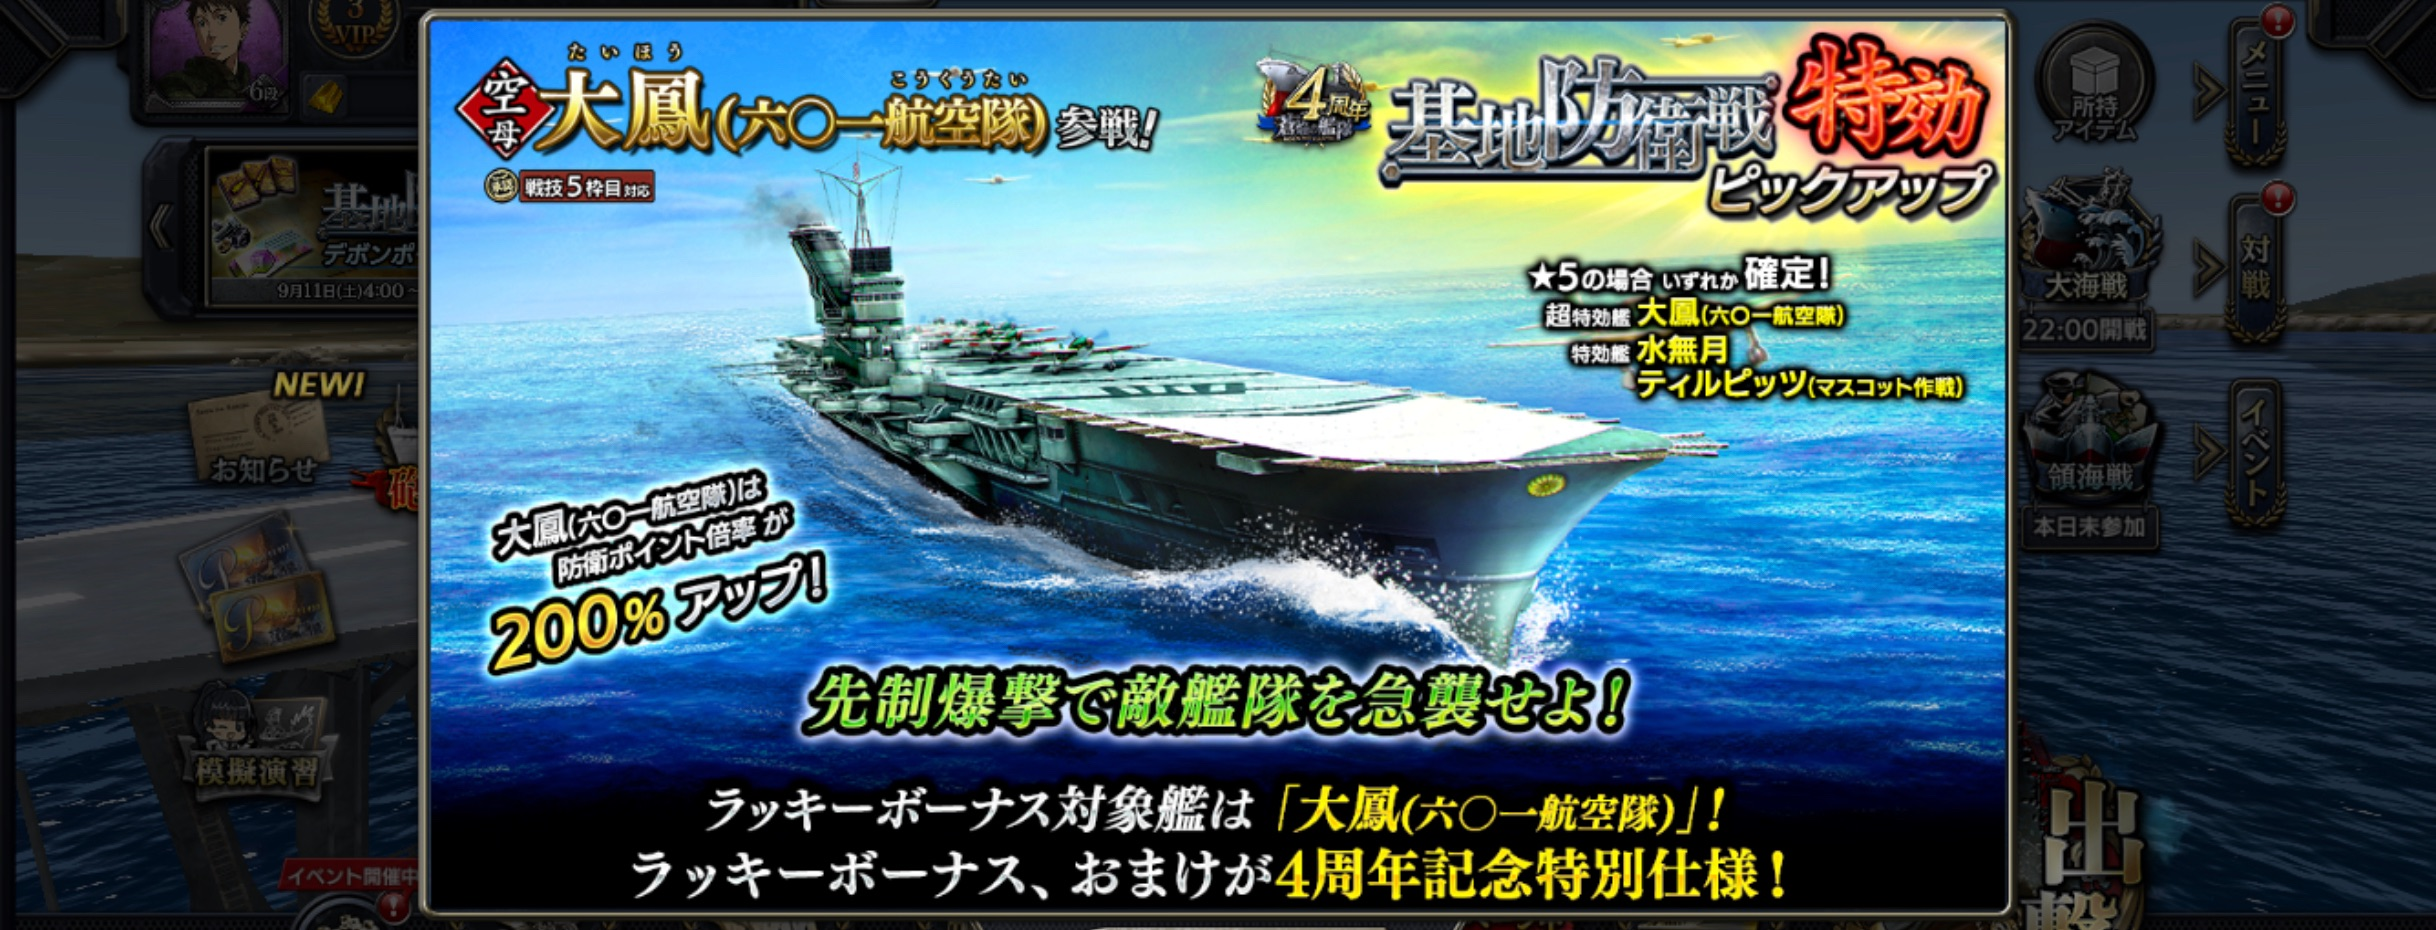 aircraft-carrier:Taiho6